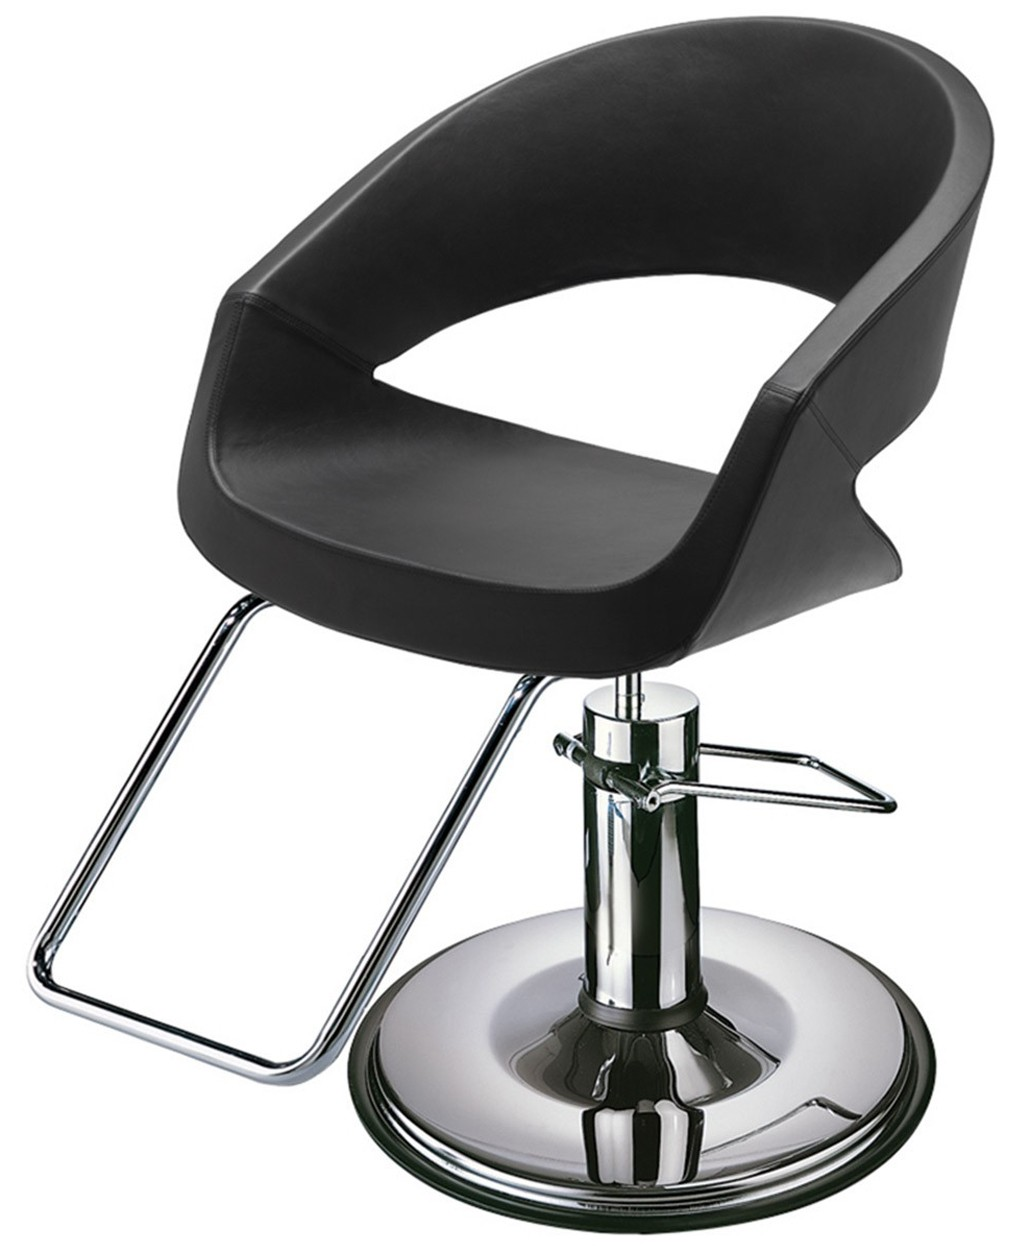 belmont barber chair parts covers for hire melbourne takara st m80 caruso styling